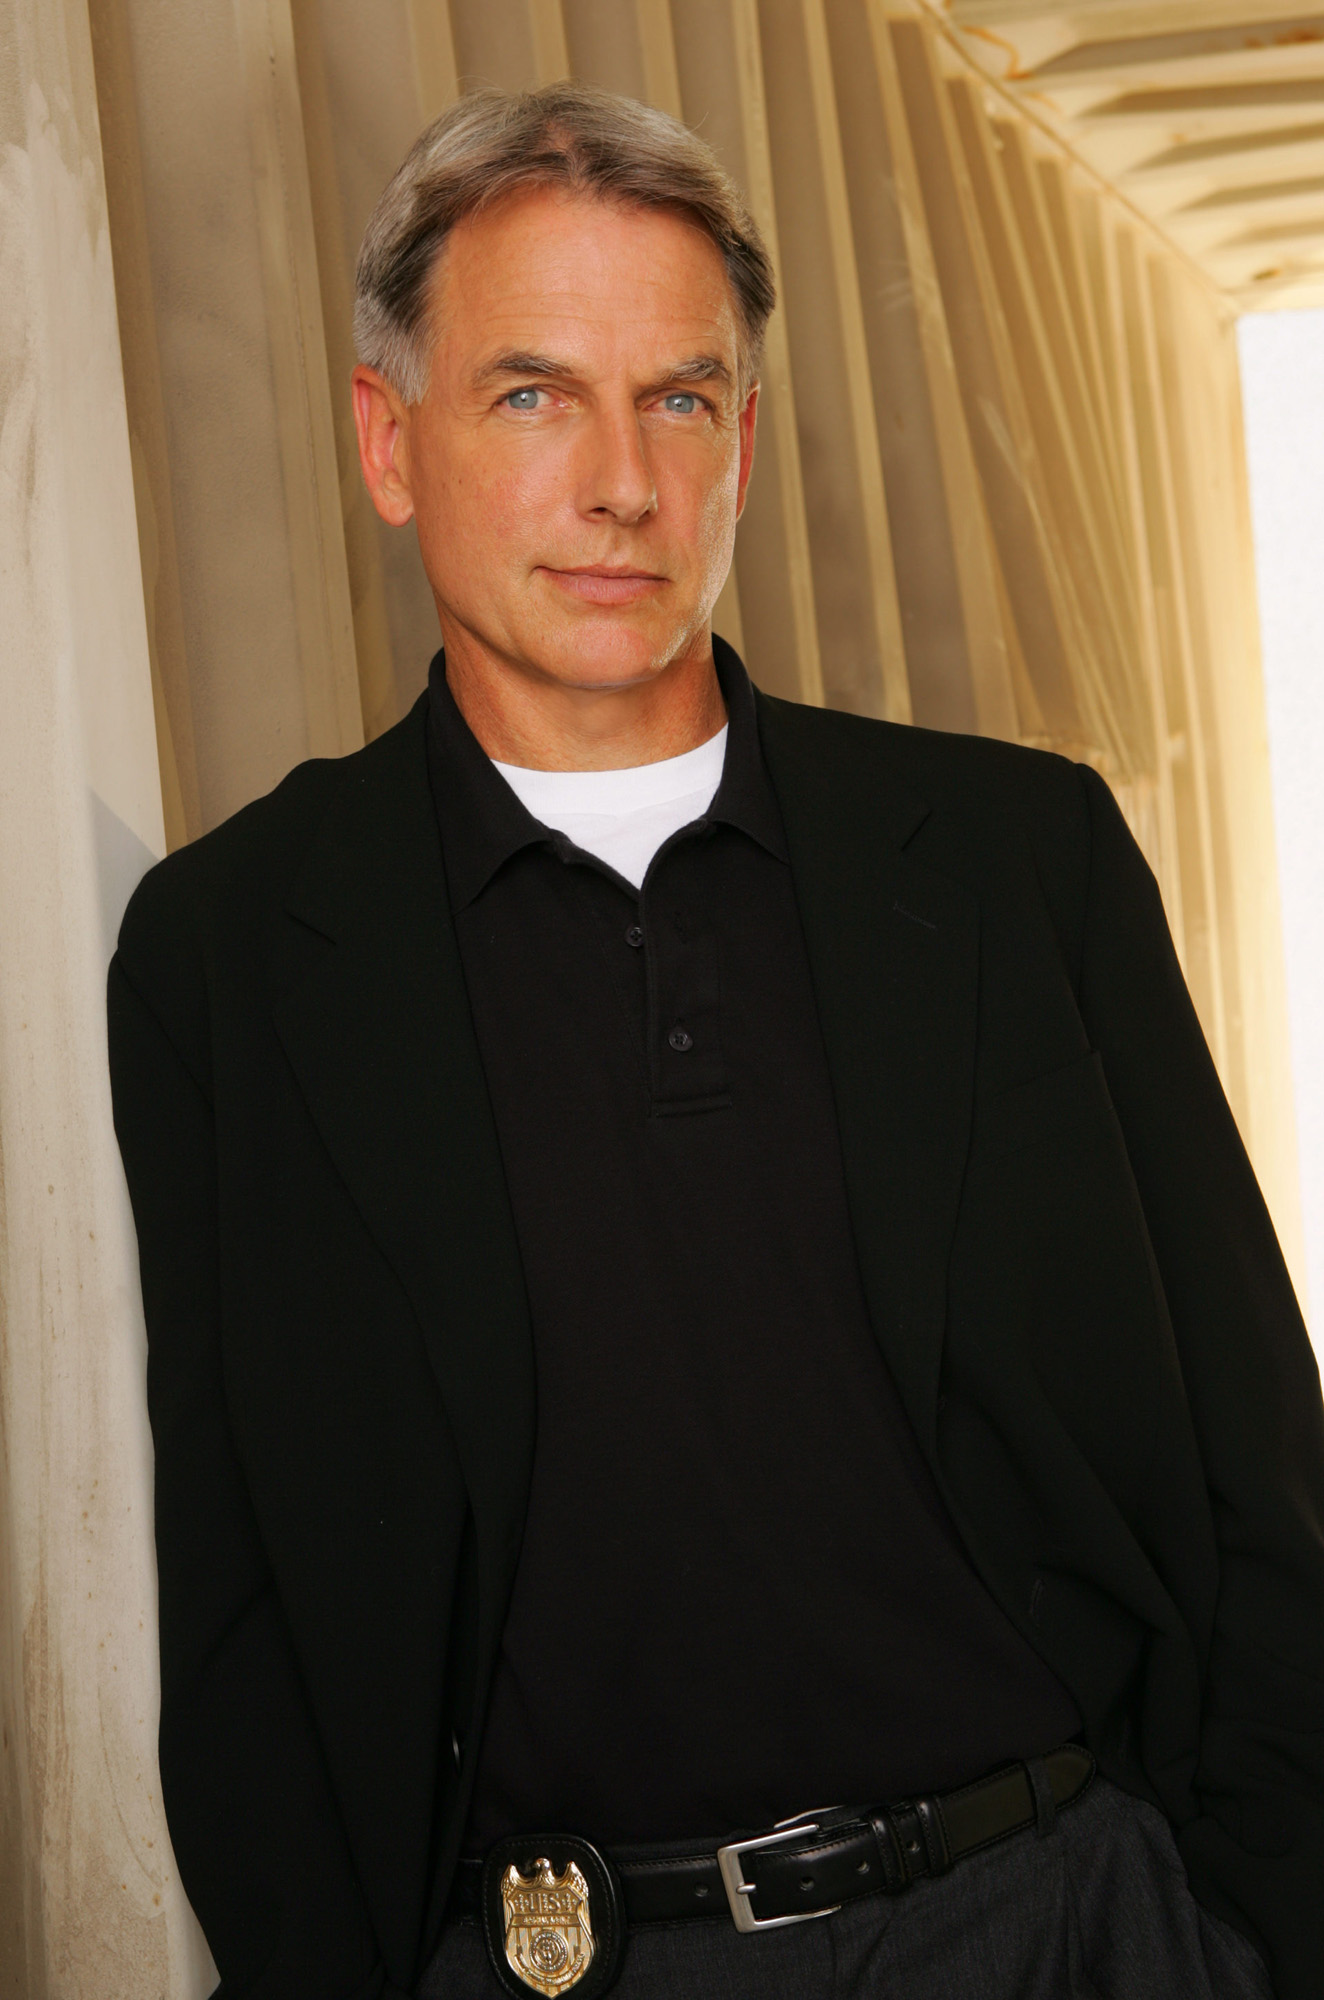 Mark harmon clipart.